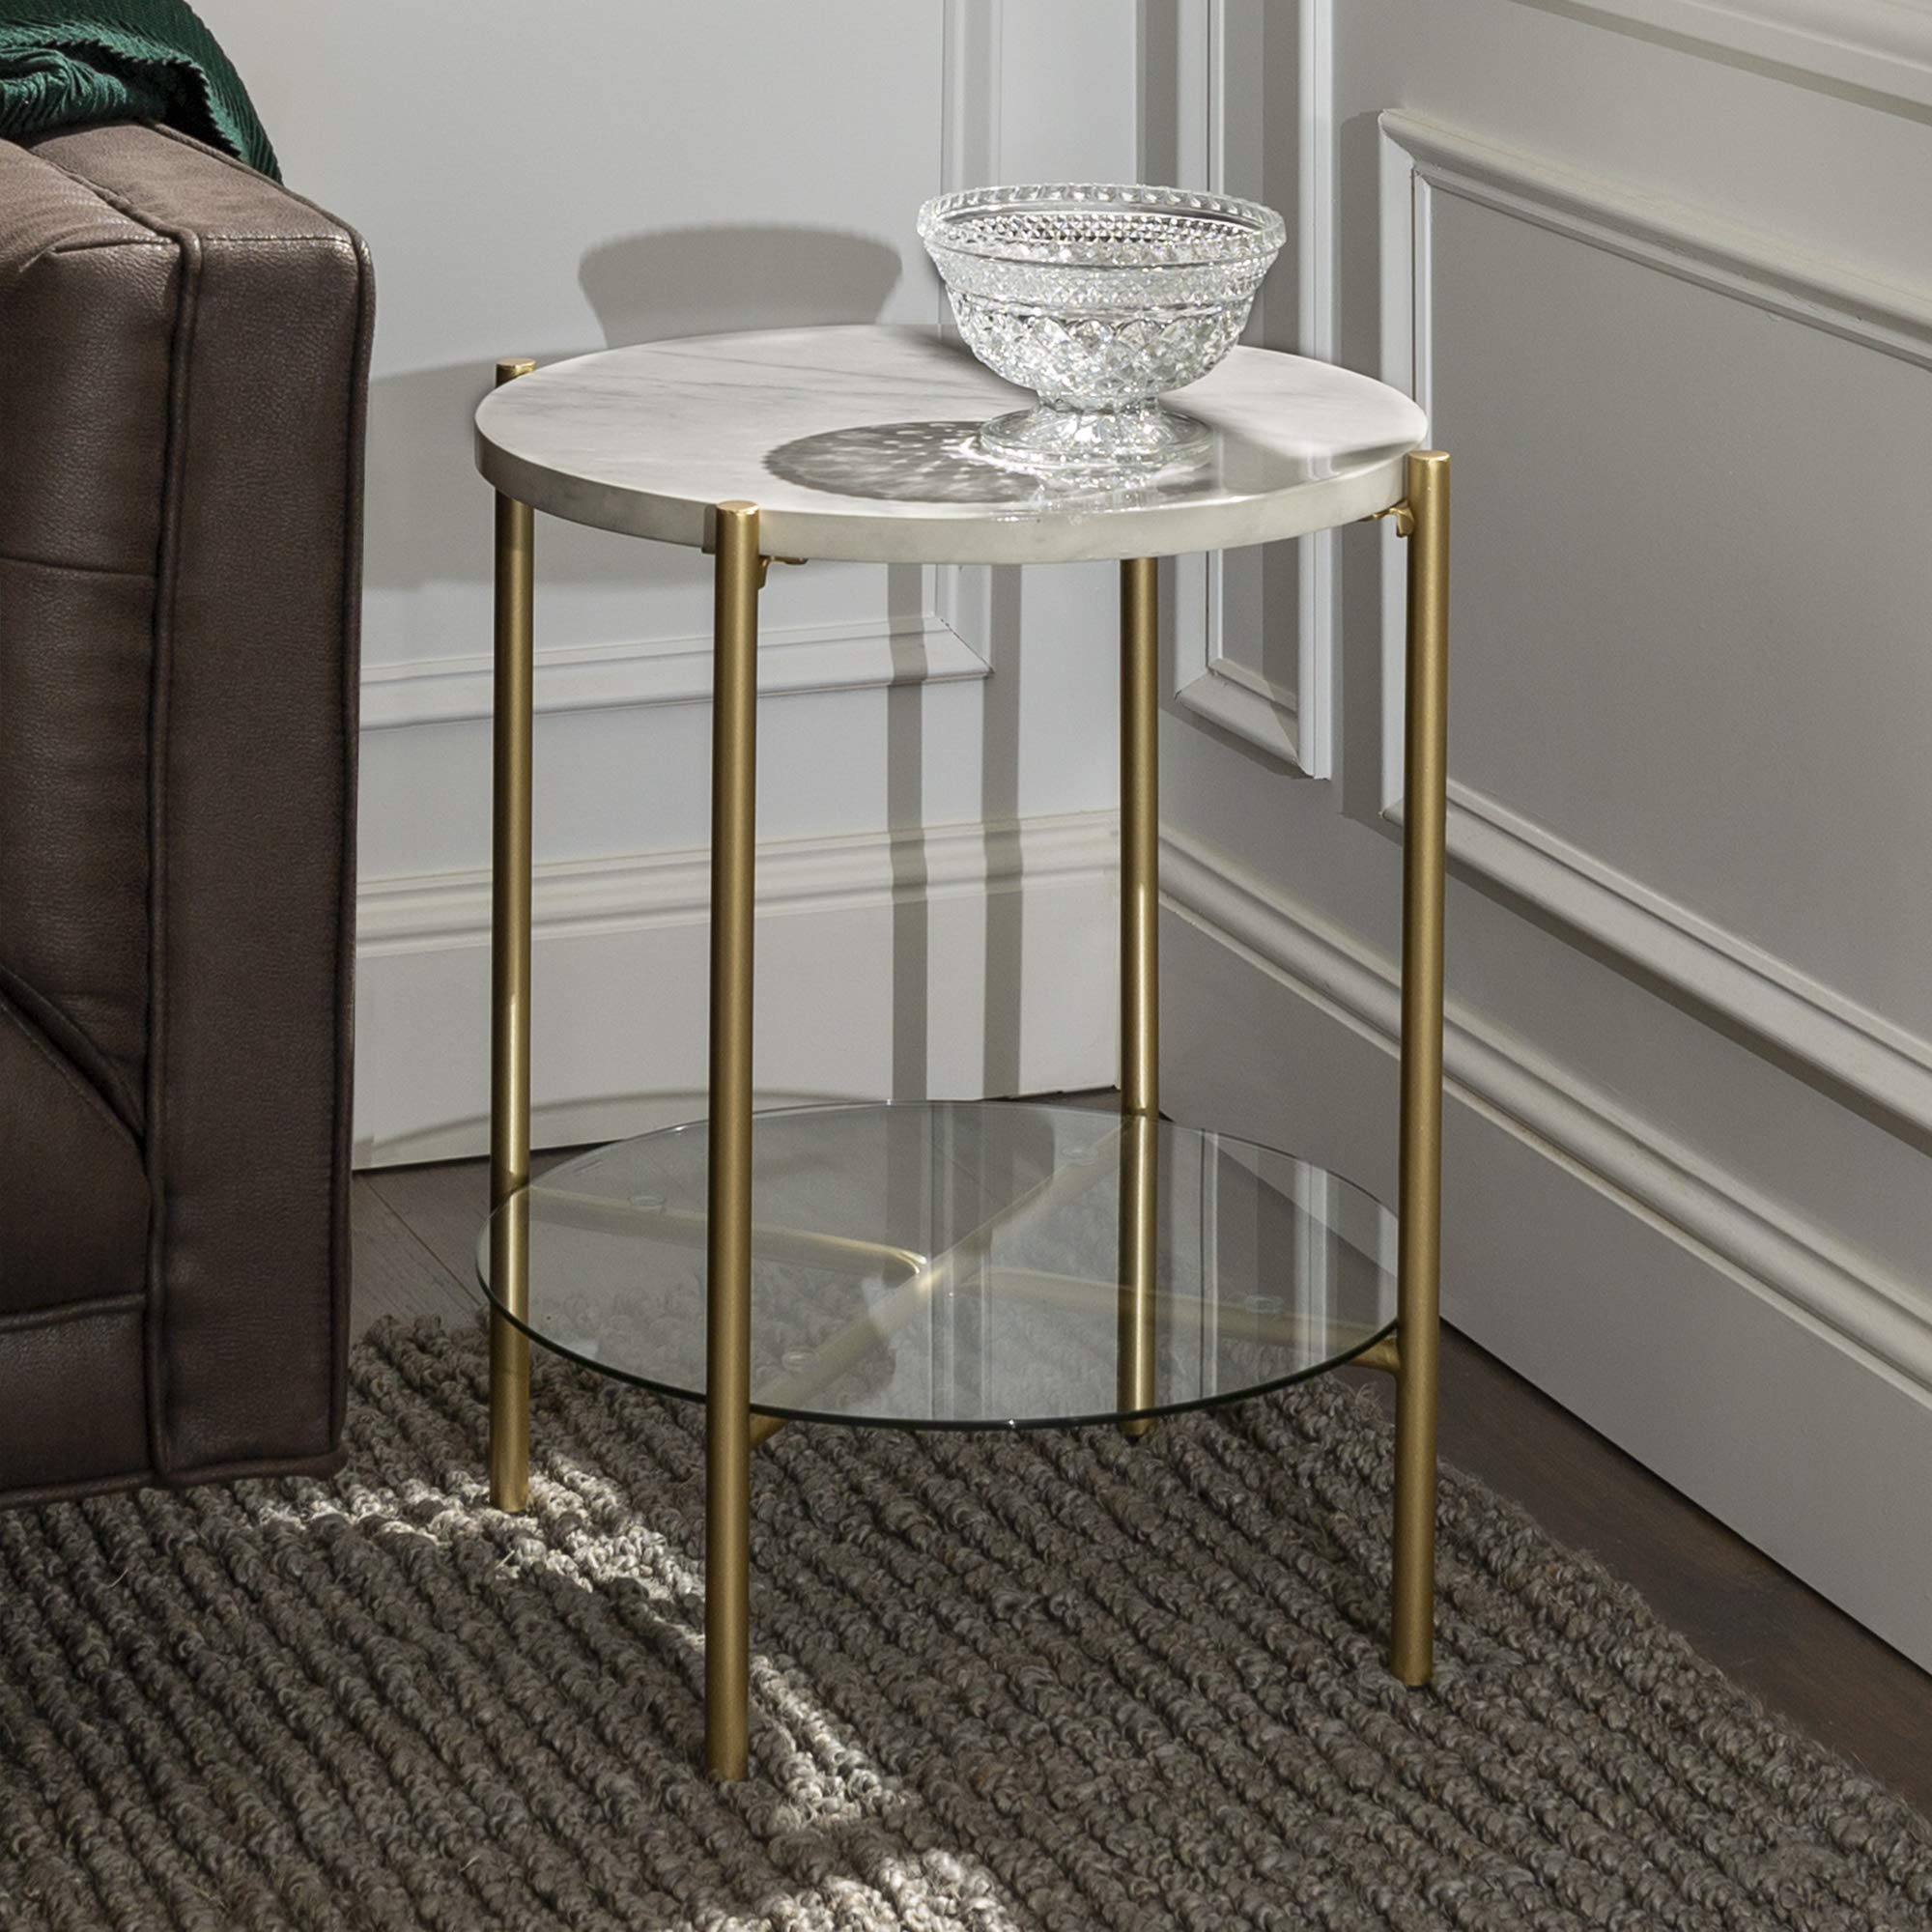 Walker Edison Blaine Mid Century Modern Marble and Glass Round Accent Table , 20 Inch, White Marble and Gold